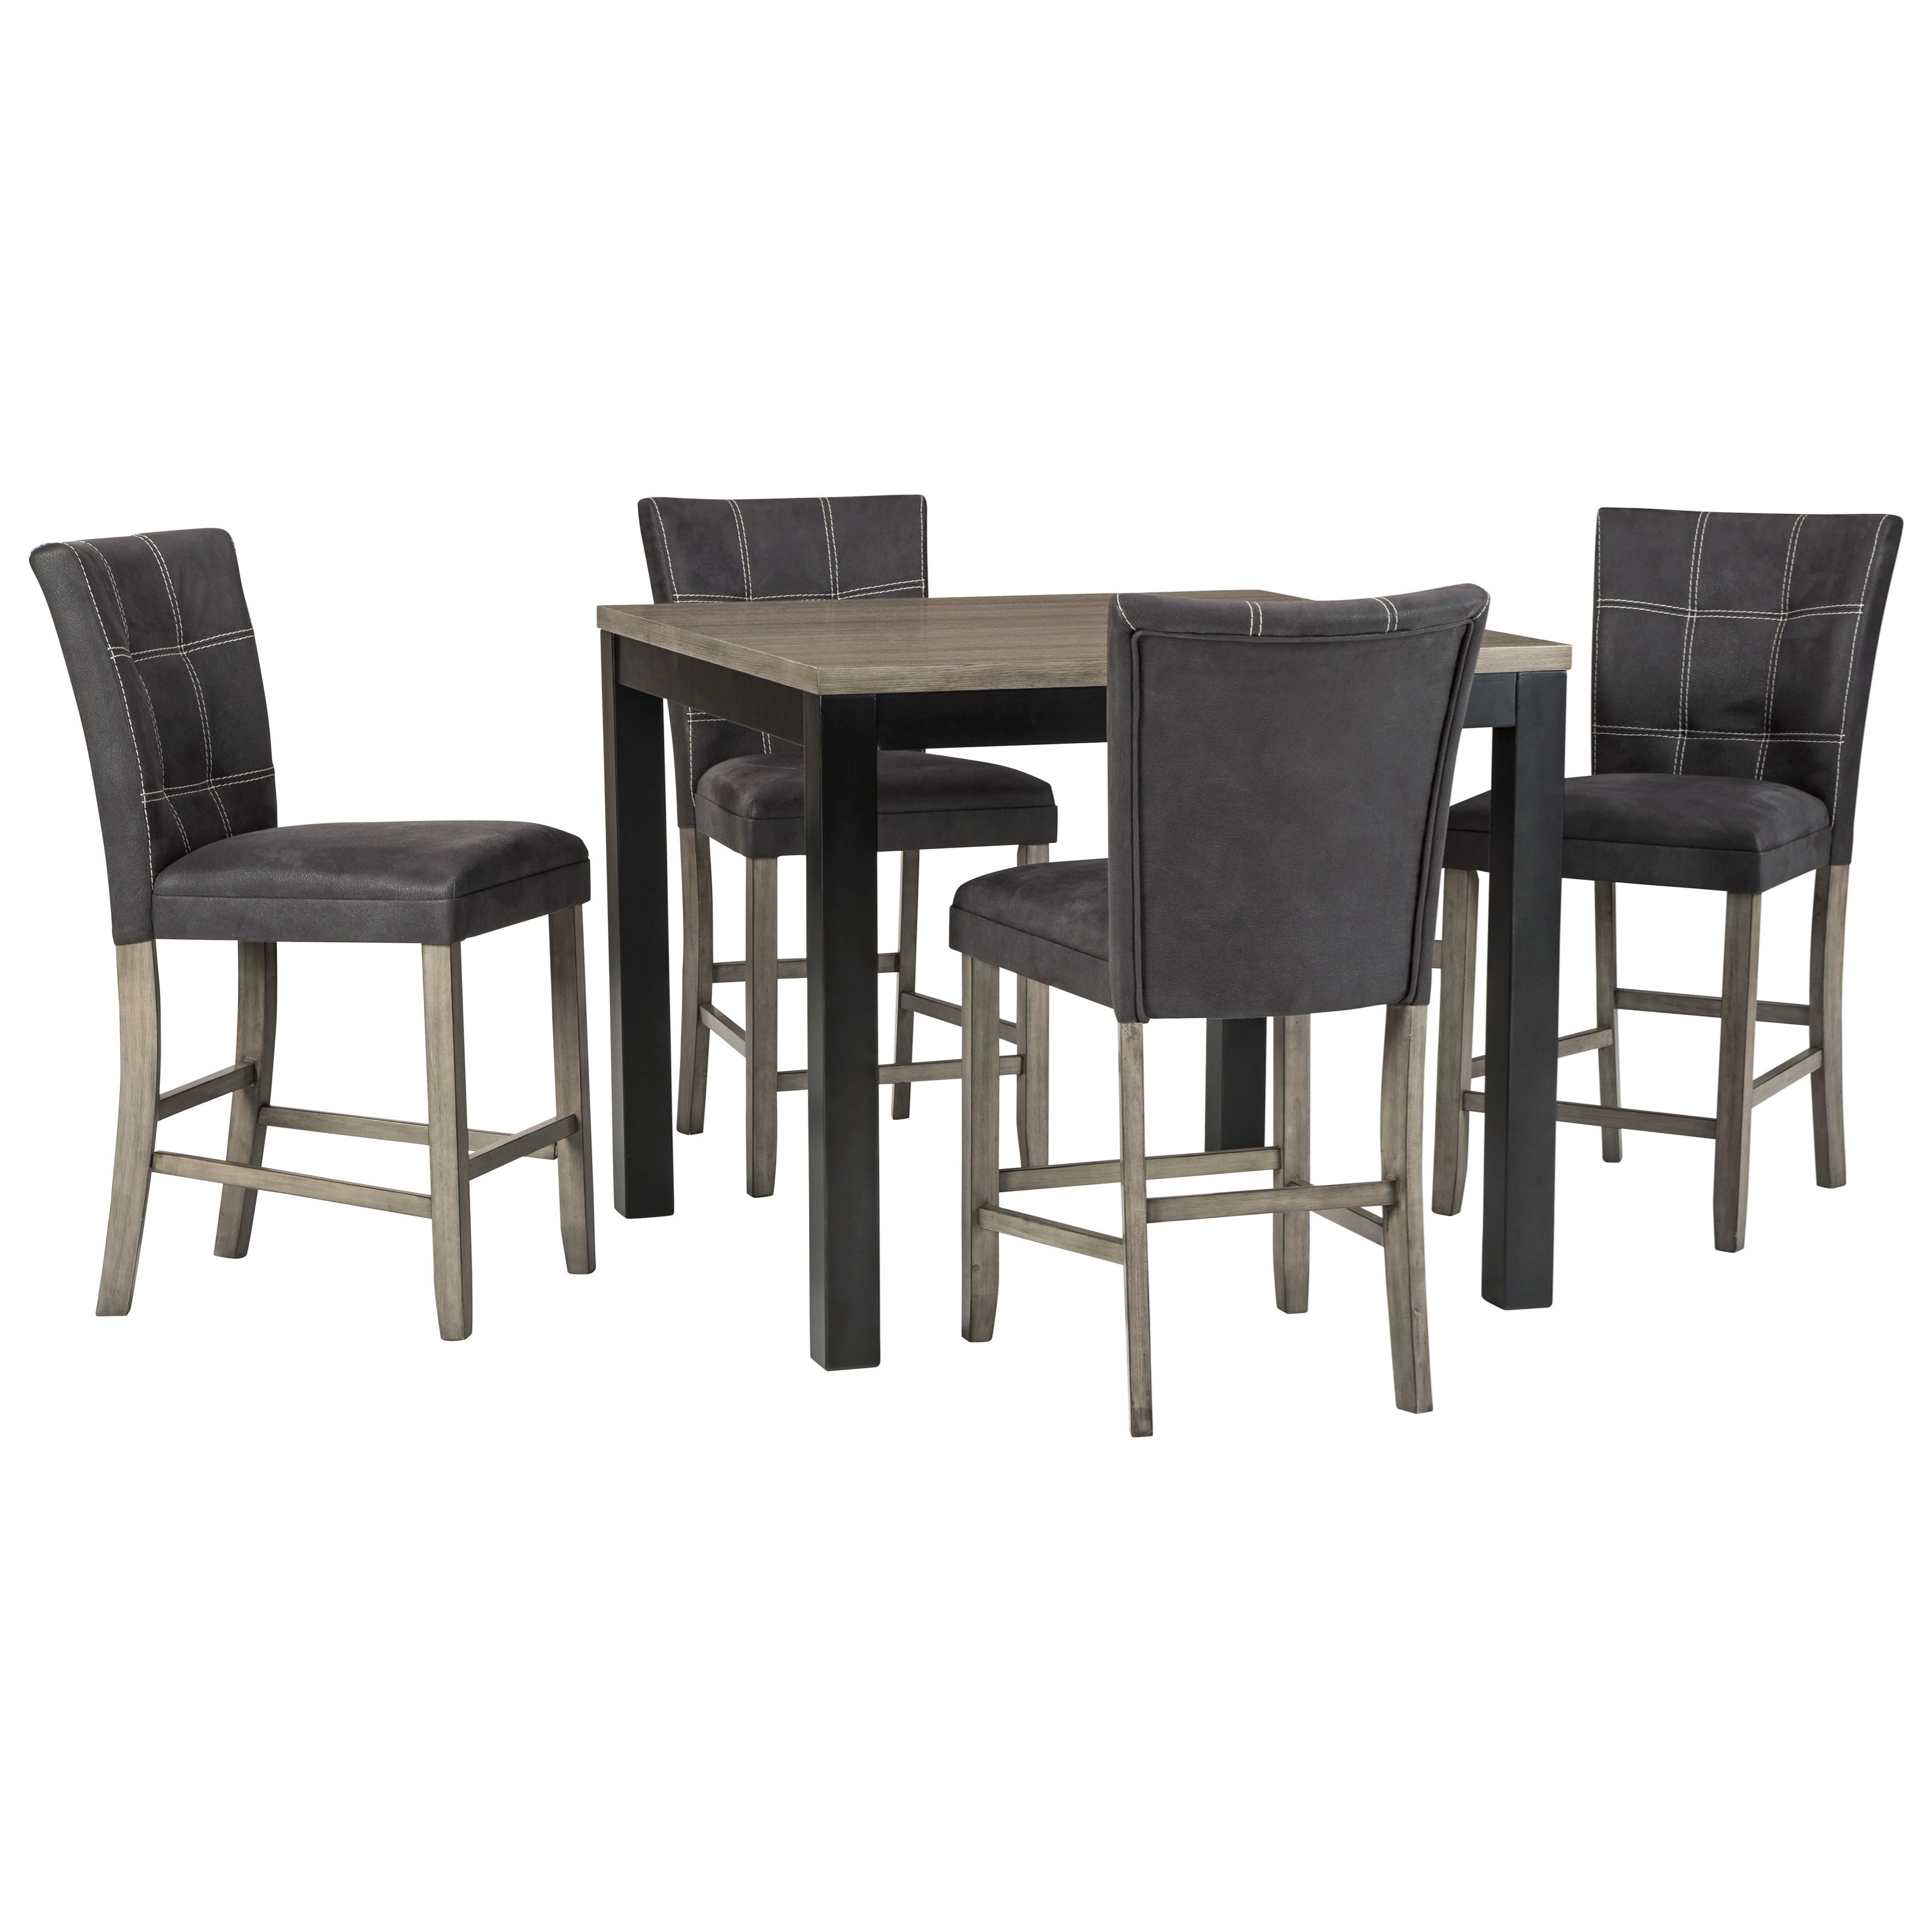 Dontally 5-Piece Counter Table Set by Benchcraft at Prime Brothers Furniture